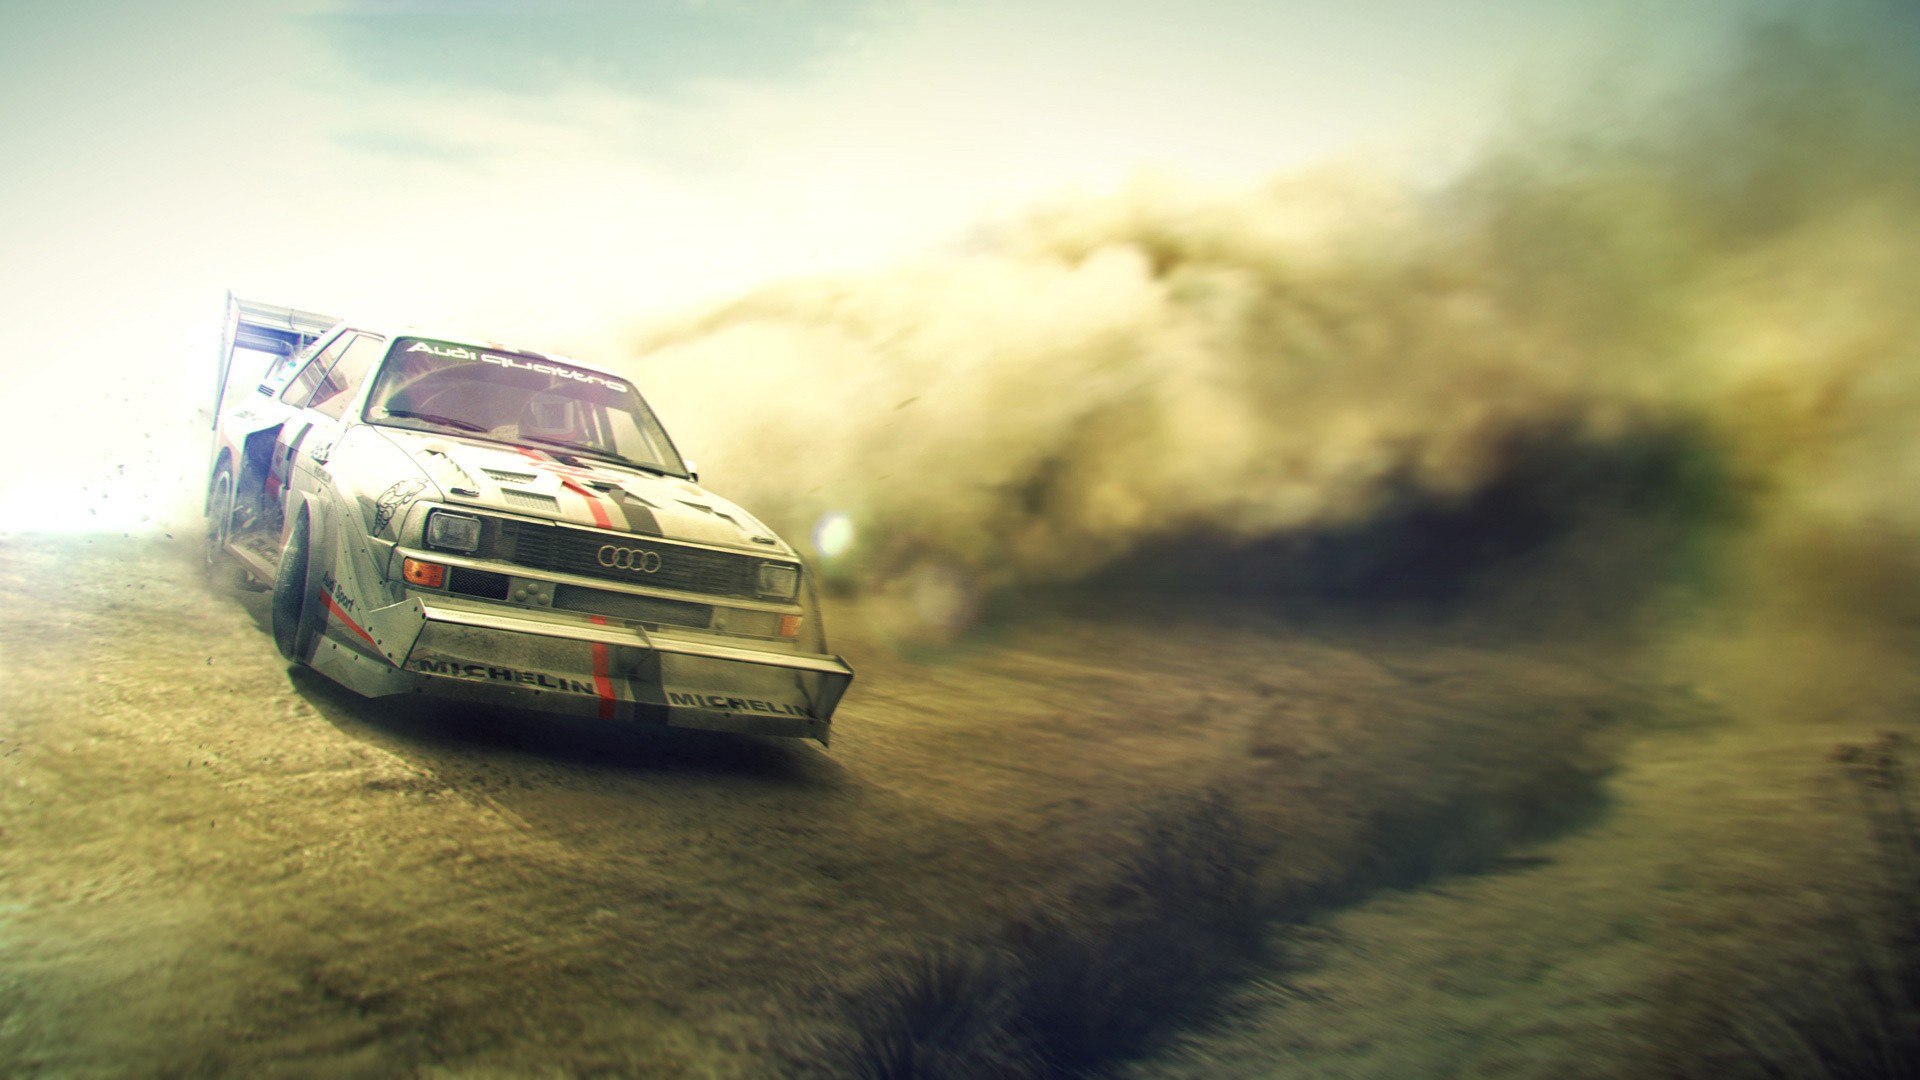 1920x1080 - Rallying Wallpapers 21